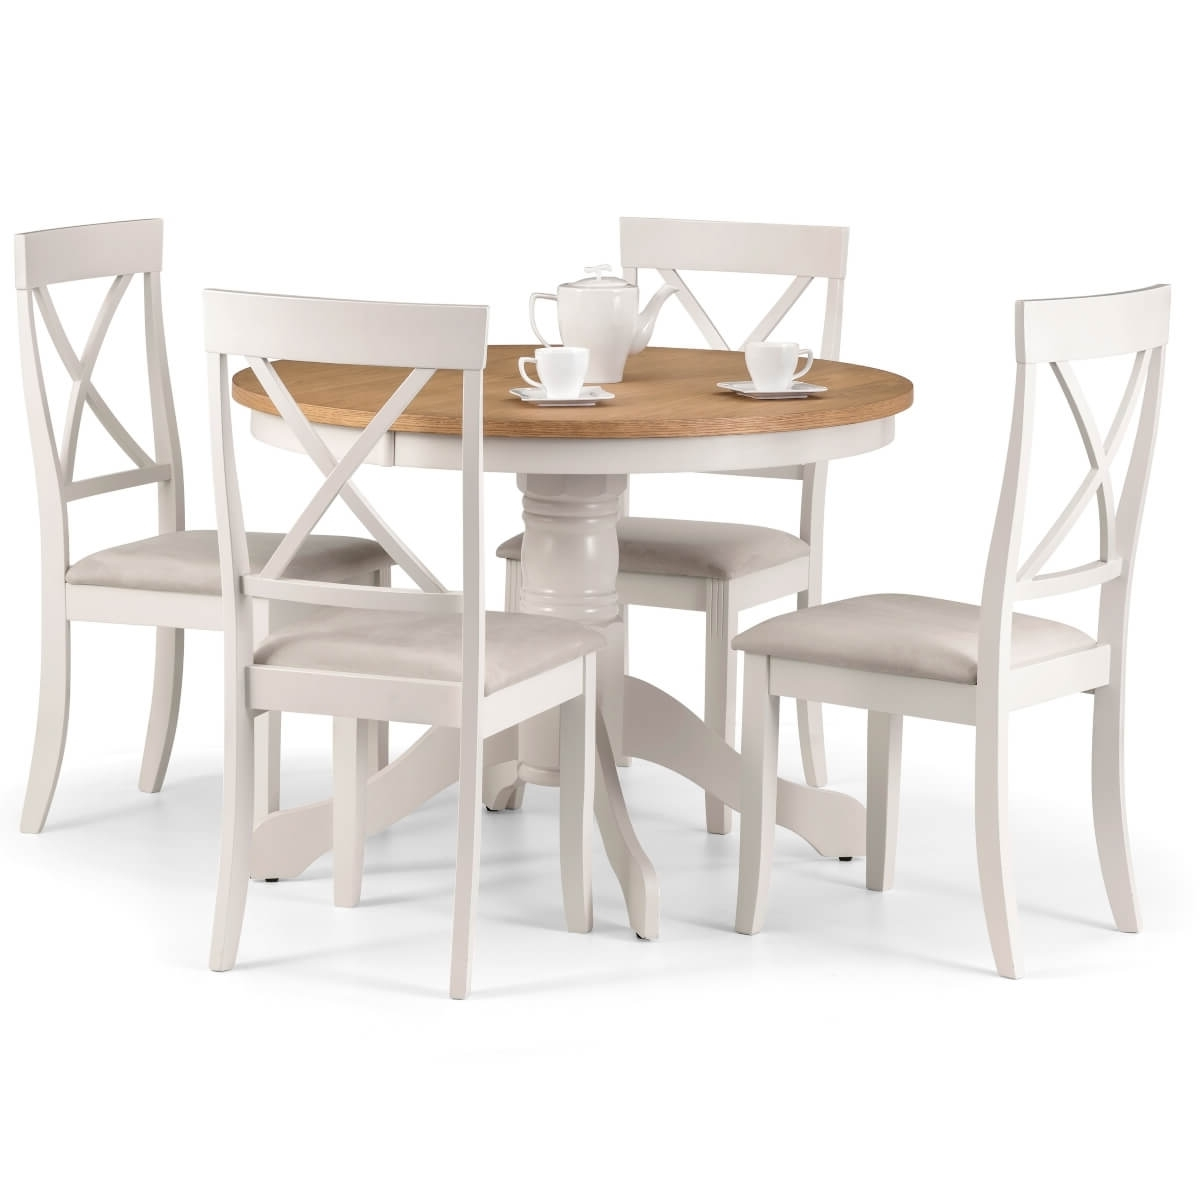 Round Oak Dining Tables And 4 Chairs Pertaining To Fashionable Dining Set – Davenport Dining Table And 4 Chairs In Ivory Oak Dav (View 17 of 25)